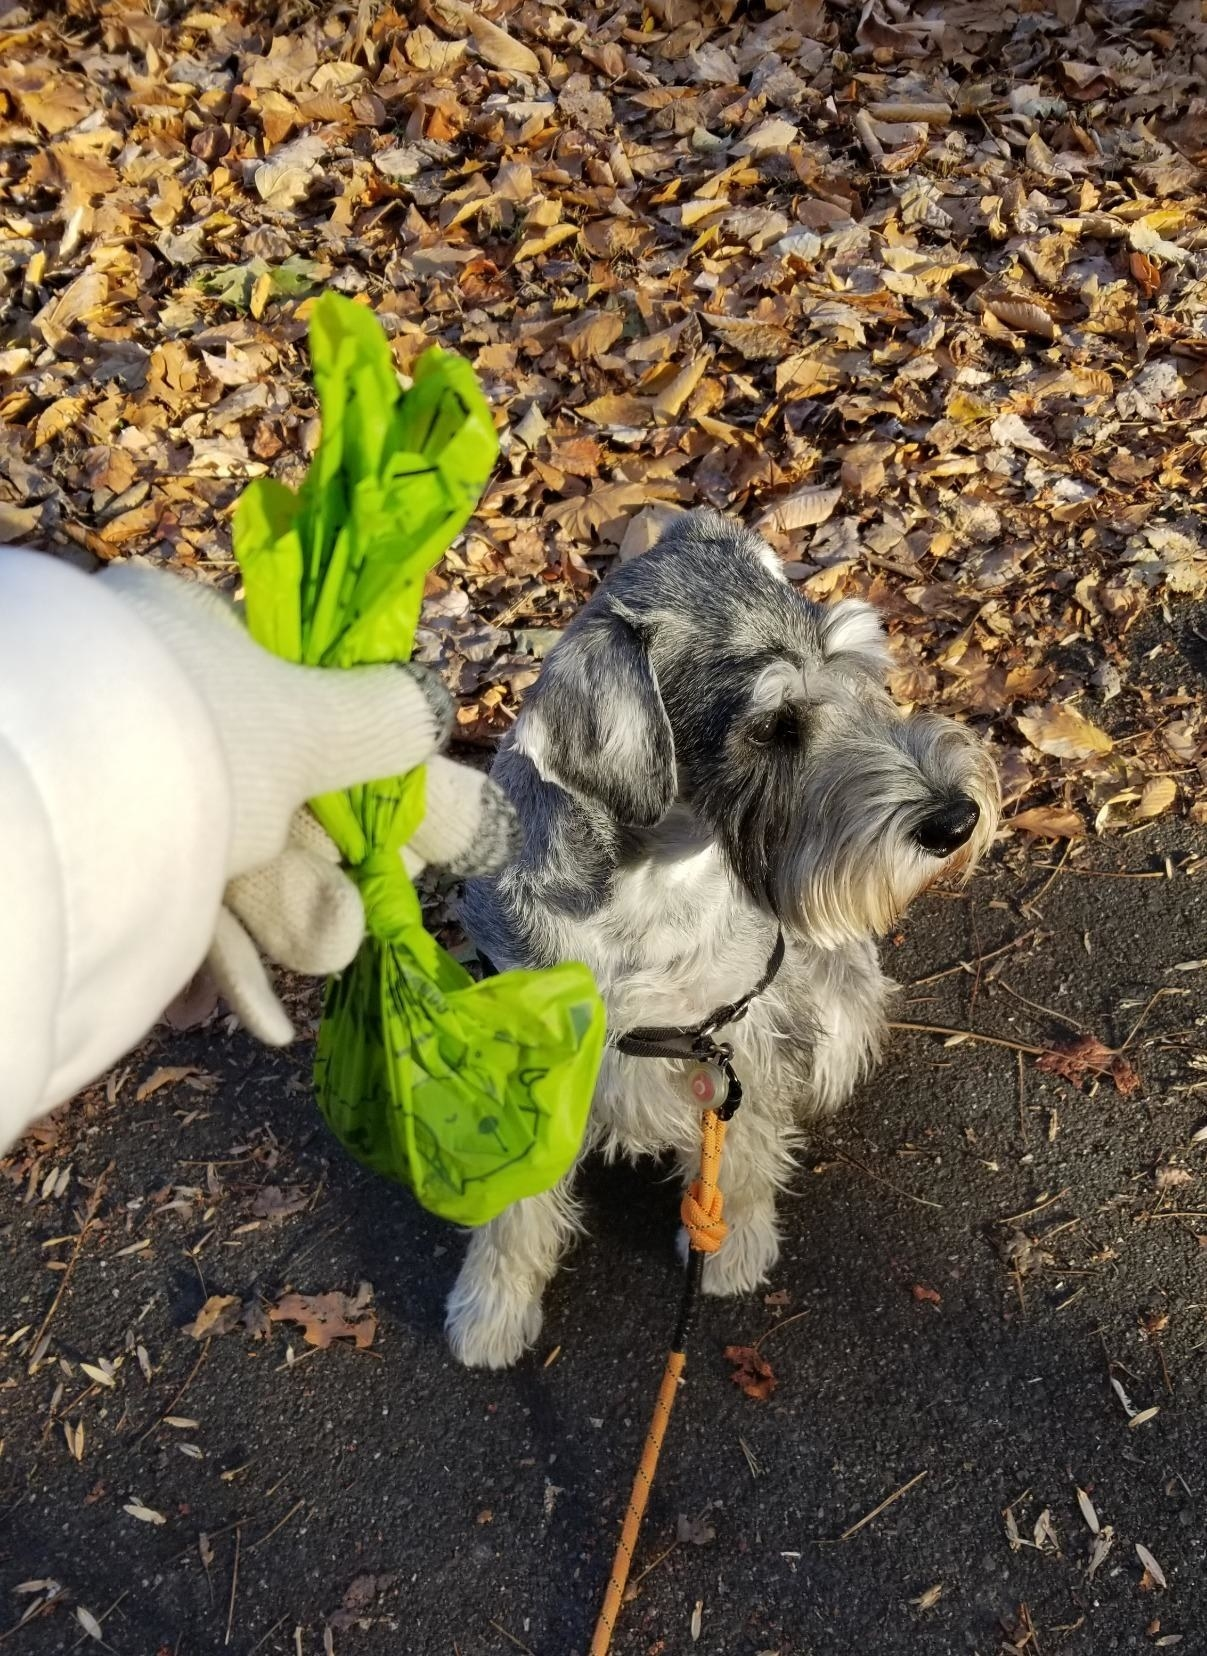 Reviewer's photo of using the green compostable bag after their dog